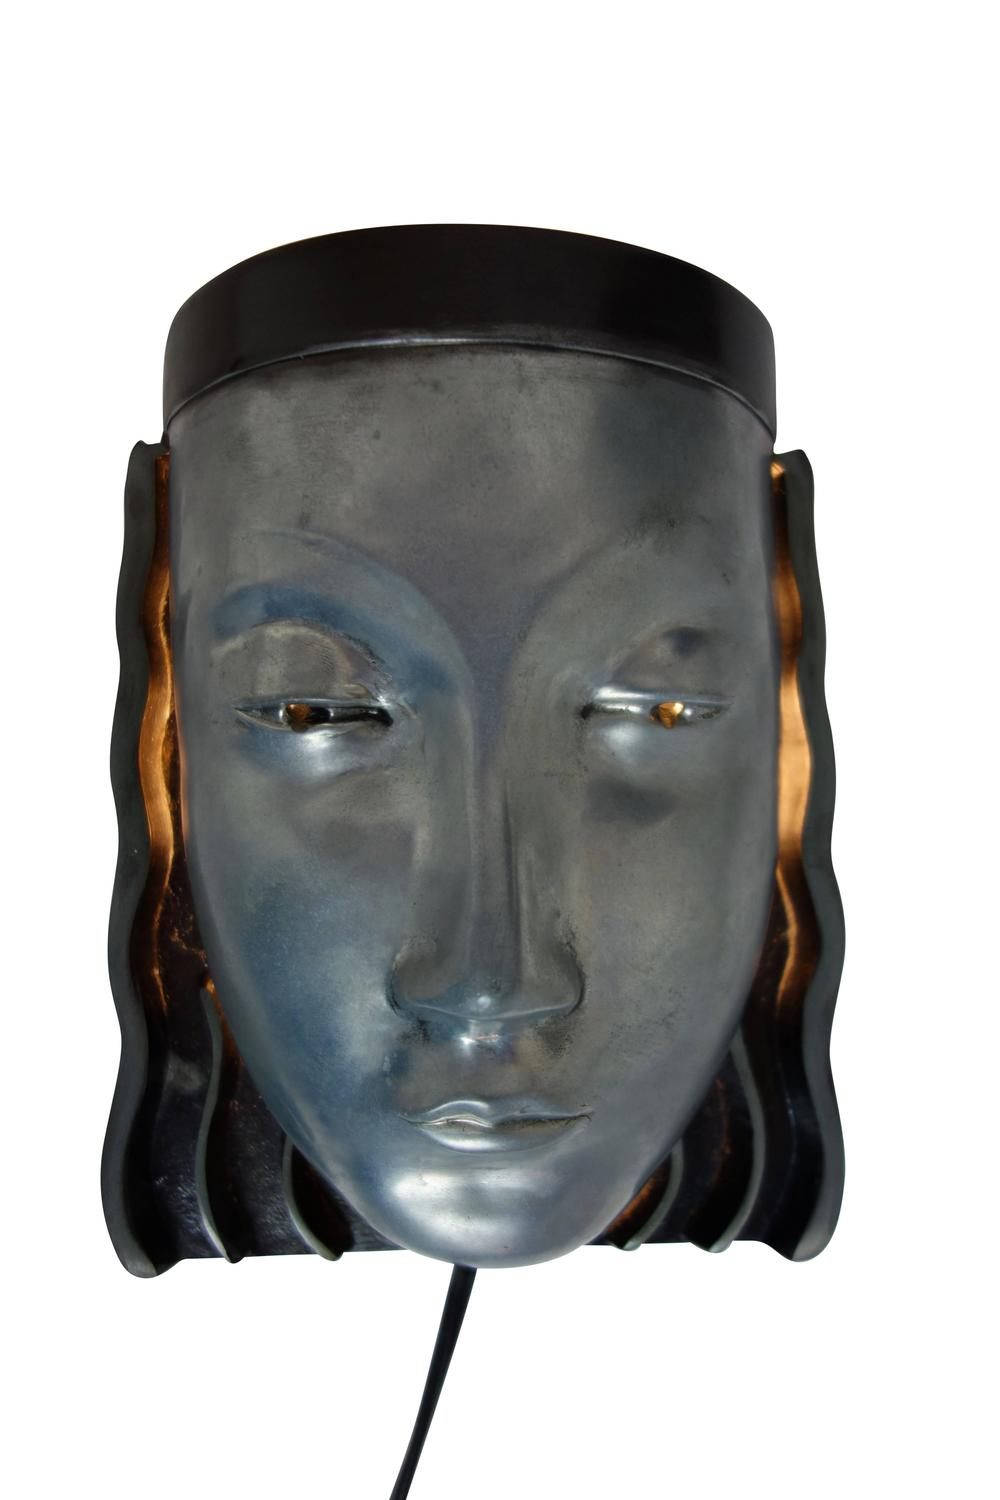 Art Deco Style Egyptian Princess Wall Sconce For Sale at 1stdibs